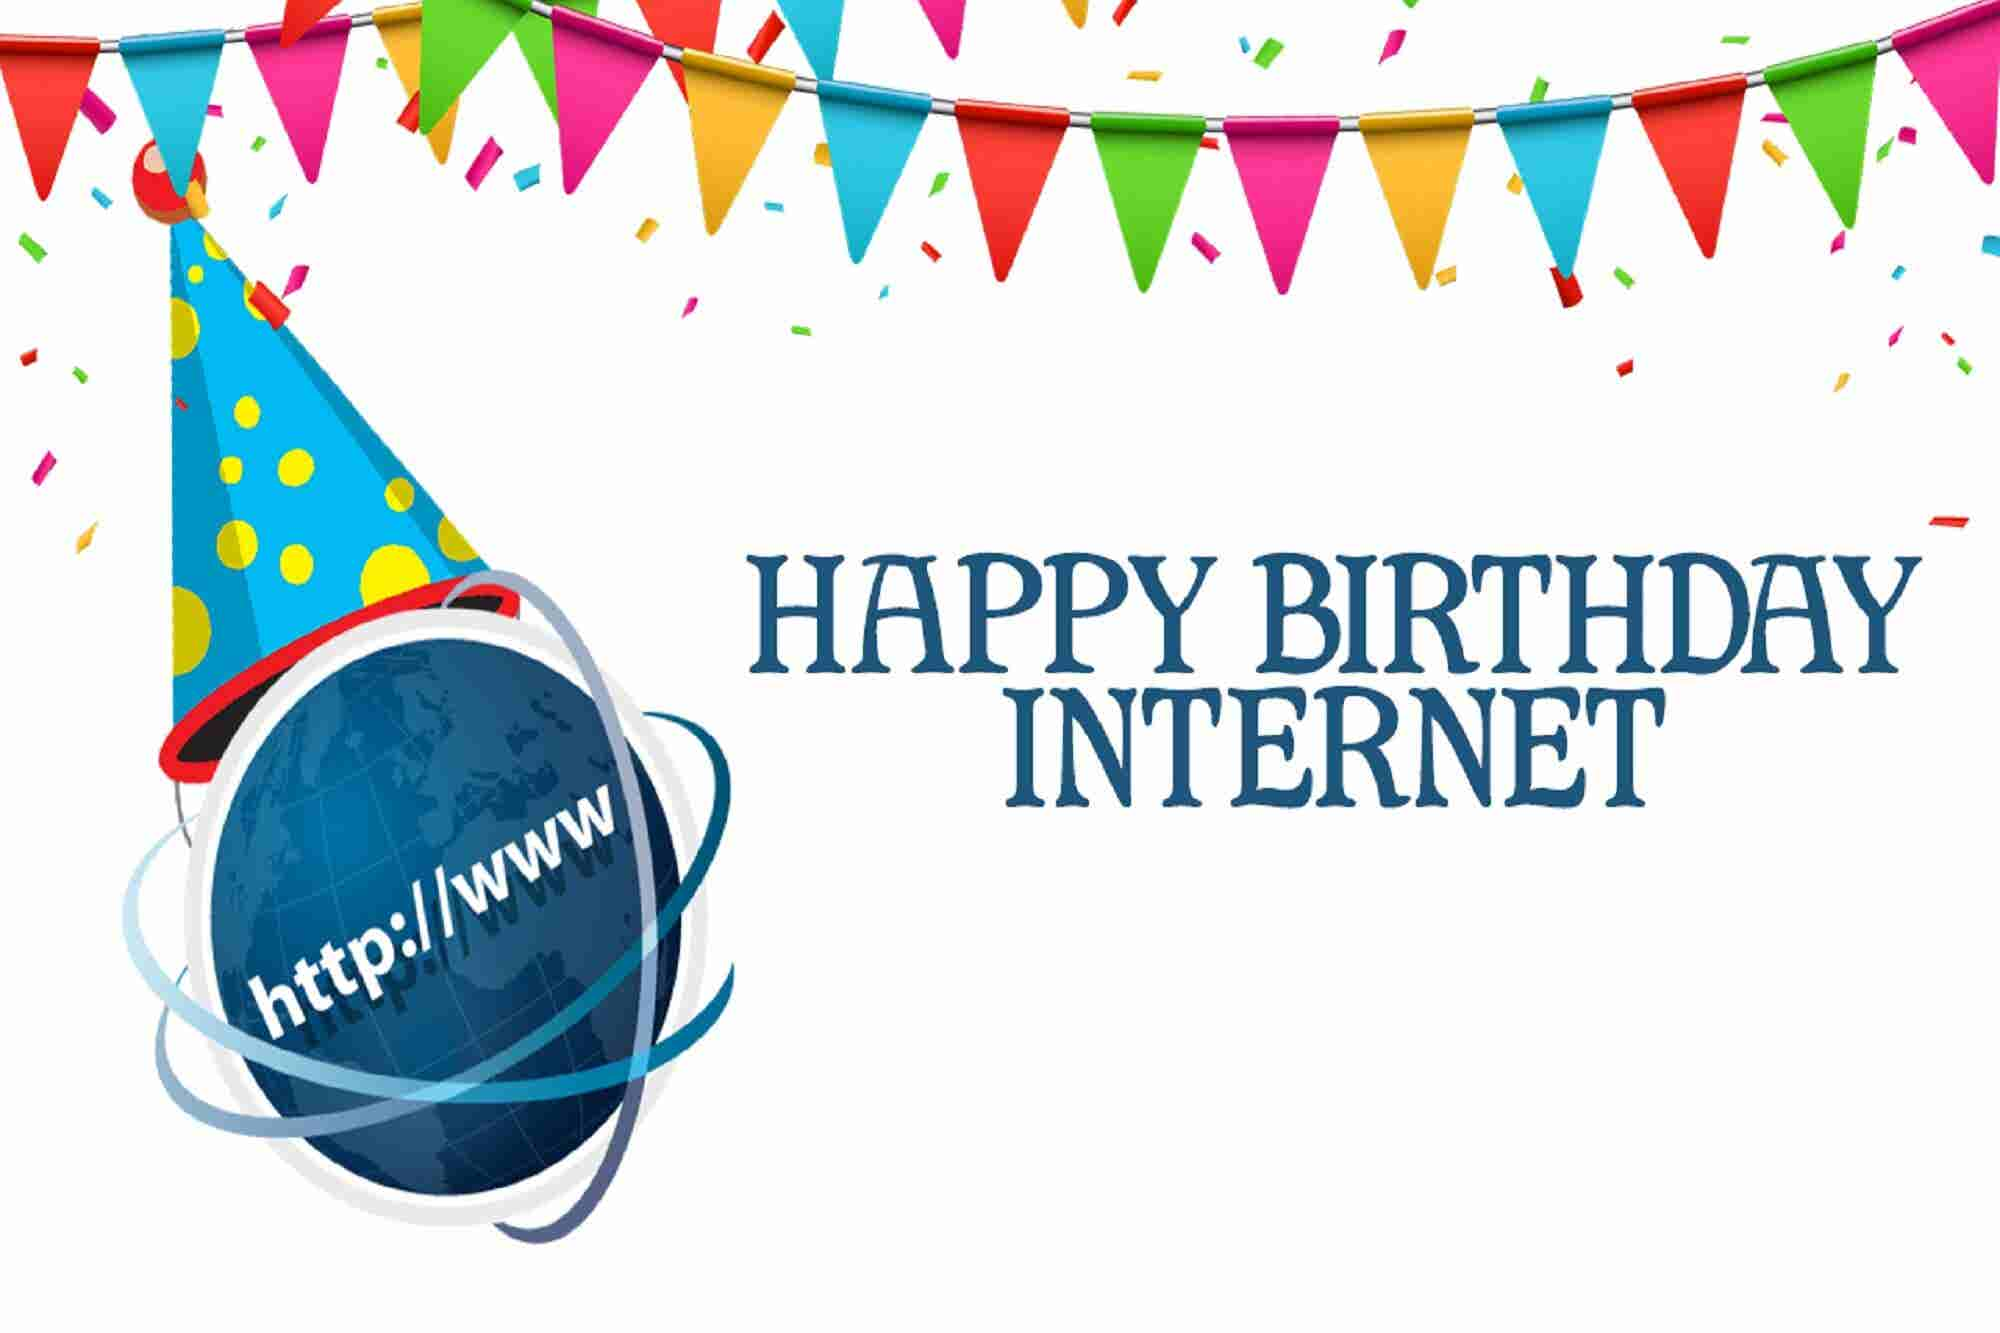 Techie Tuesday: An Era Ends With Adobe Shockwave's Demise & World Wide Web Turns 30!